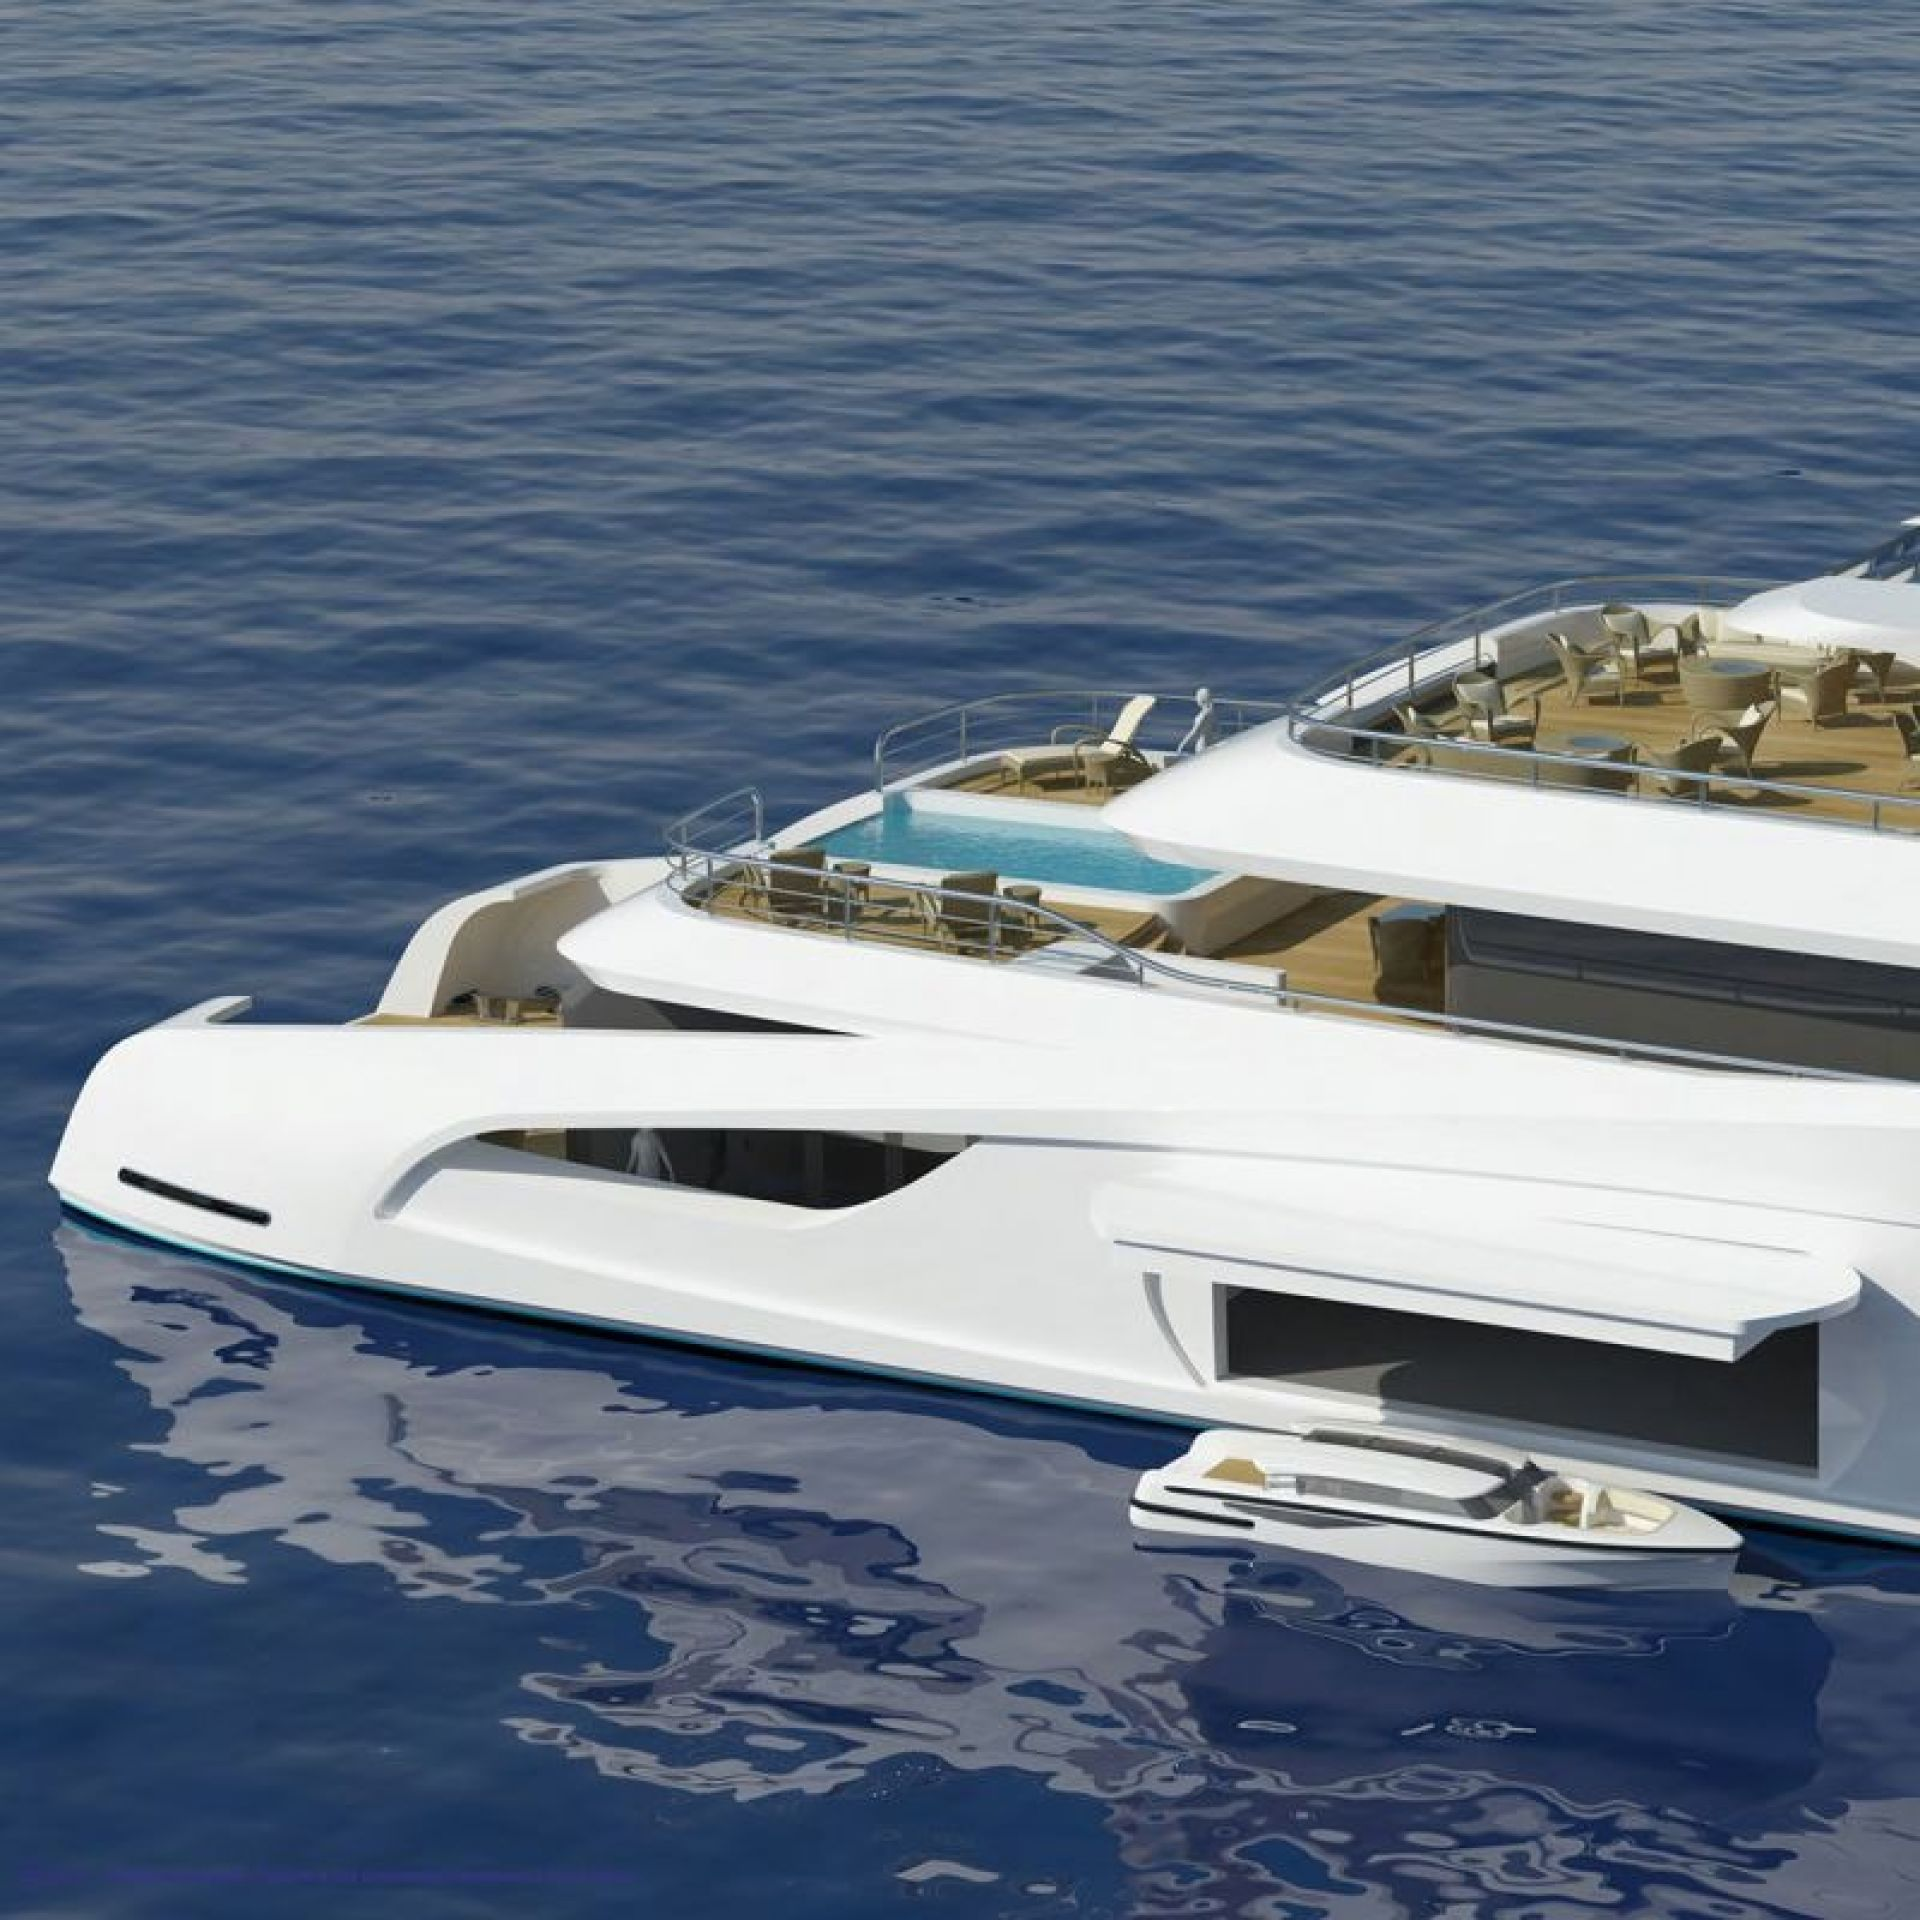 PROJECT AFFINITY YACHT FOR SALE (85.0M)